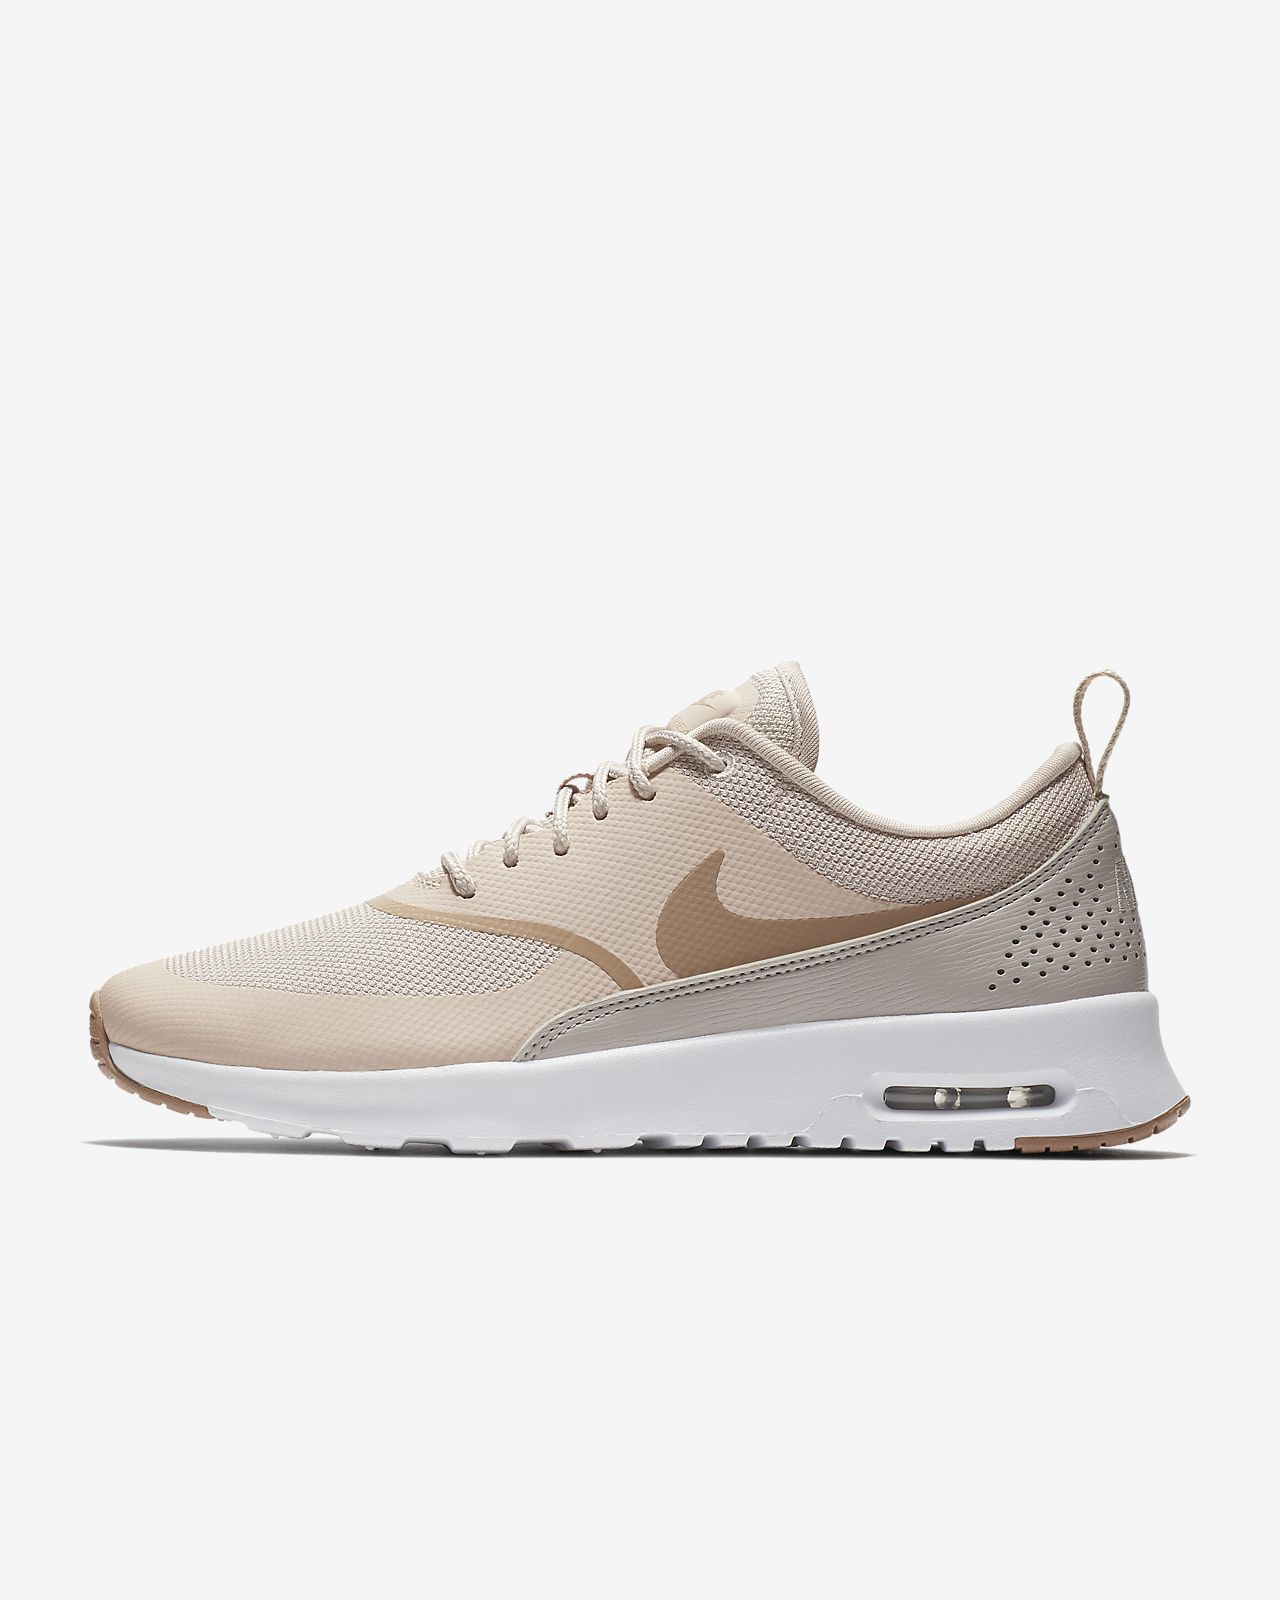 wight women's nike air max 2018 women's ncaa golf